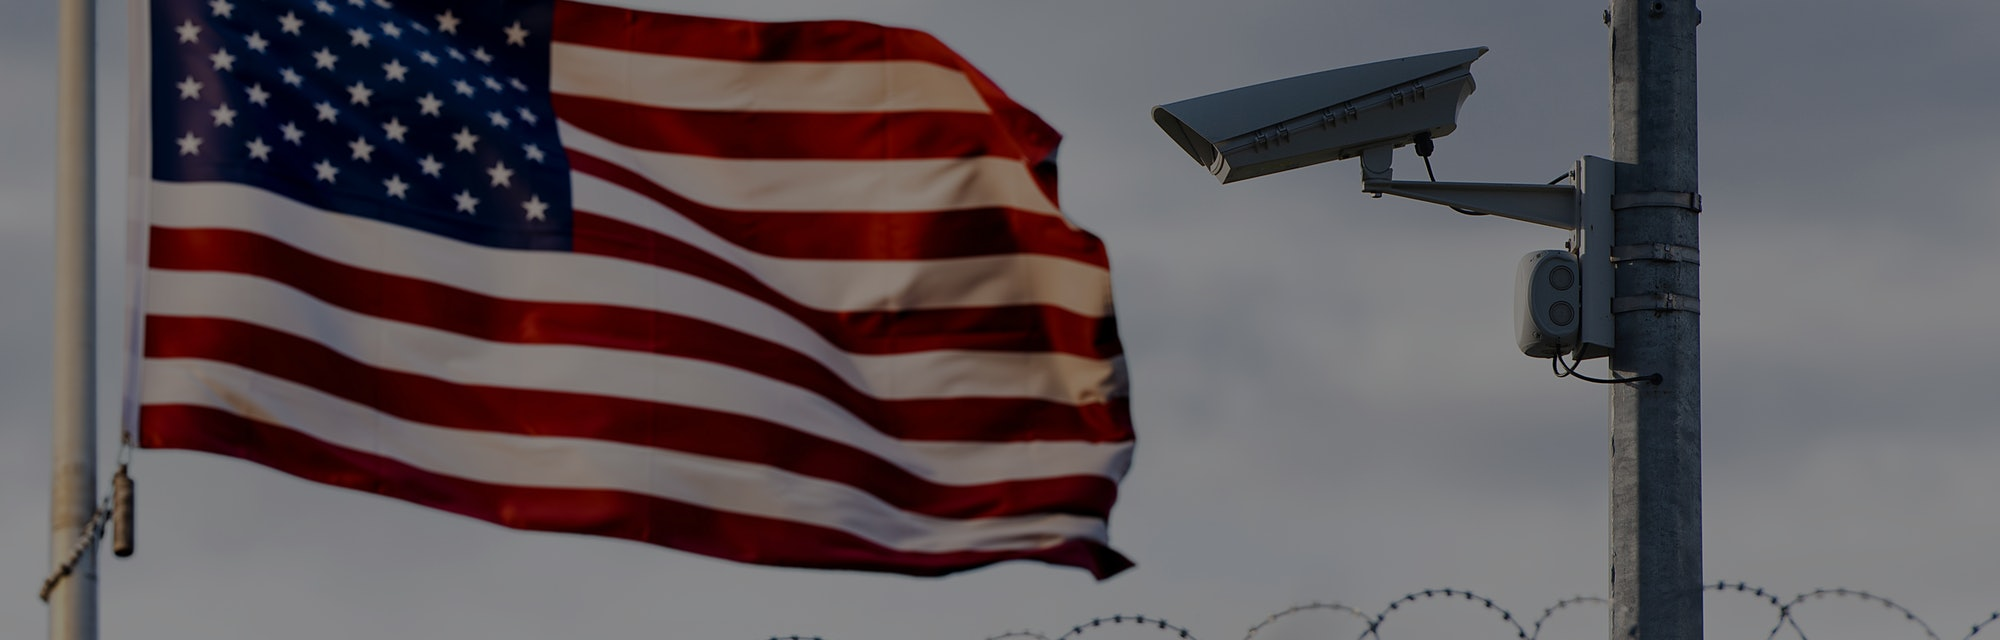 USA border, surveillance camera, barbed wire and USA flag, concept picture